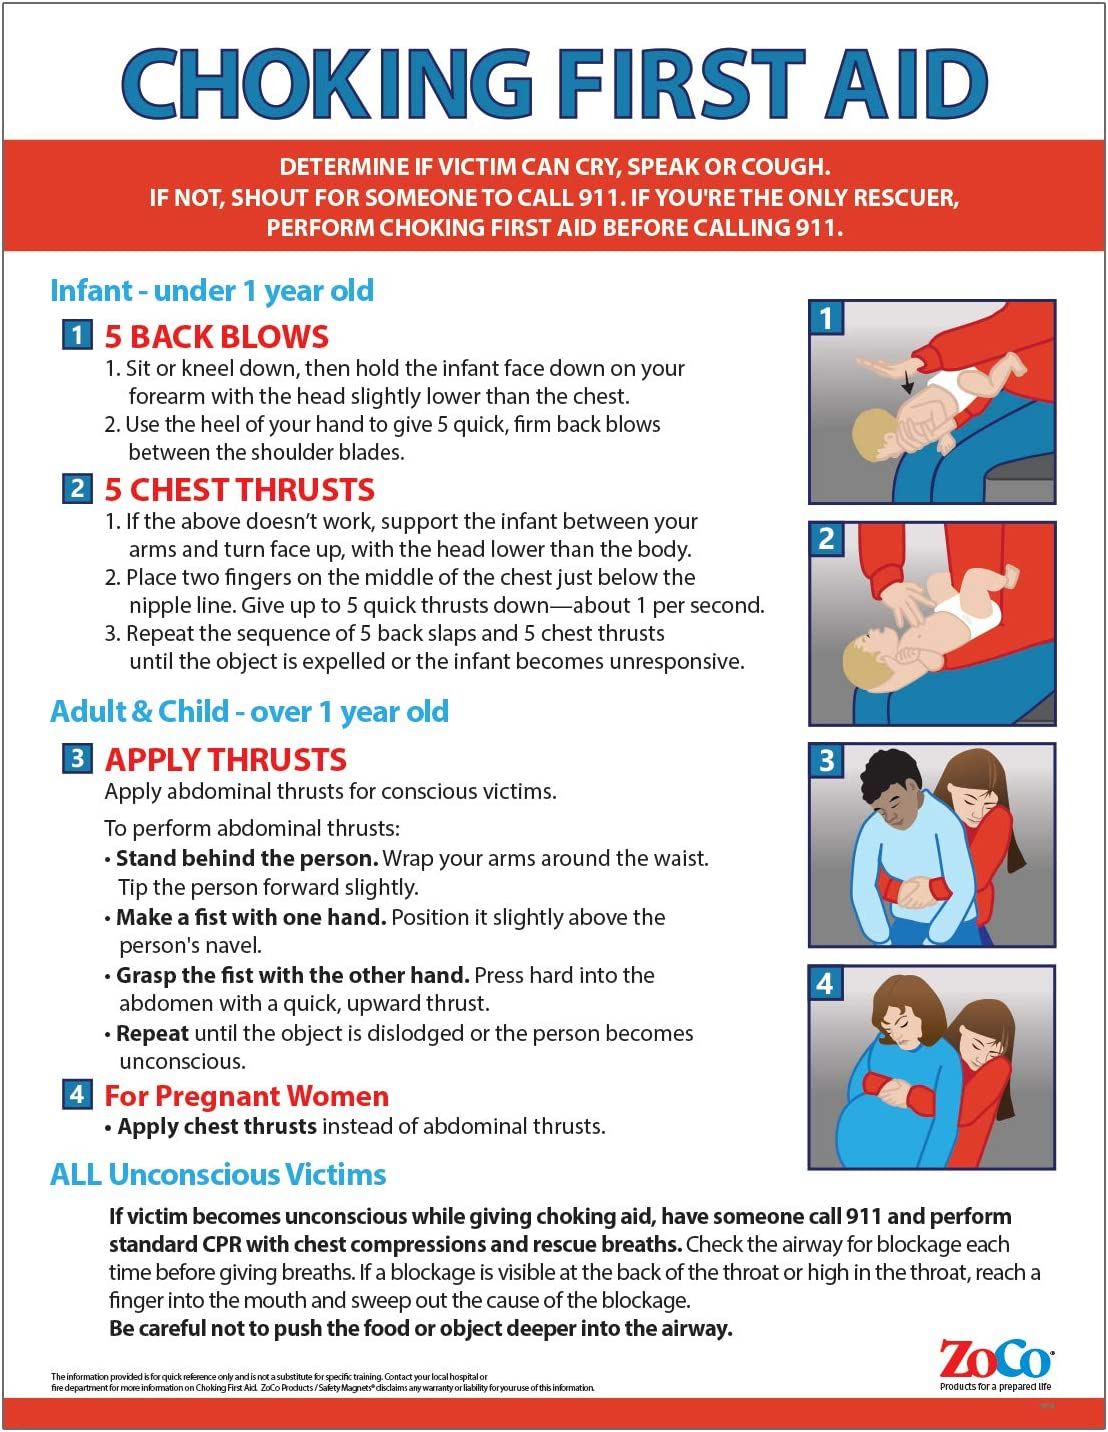 Safety Magnets Choking First Aid Poster - Choking Victim Poster - Choking Poster for Restaurants - First Aid Poster for Infants, Children, and Adults - 17 x 22 inches - Laminated (1)